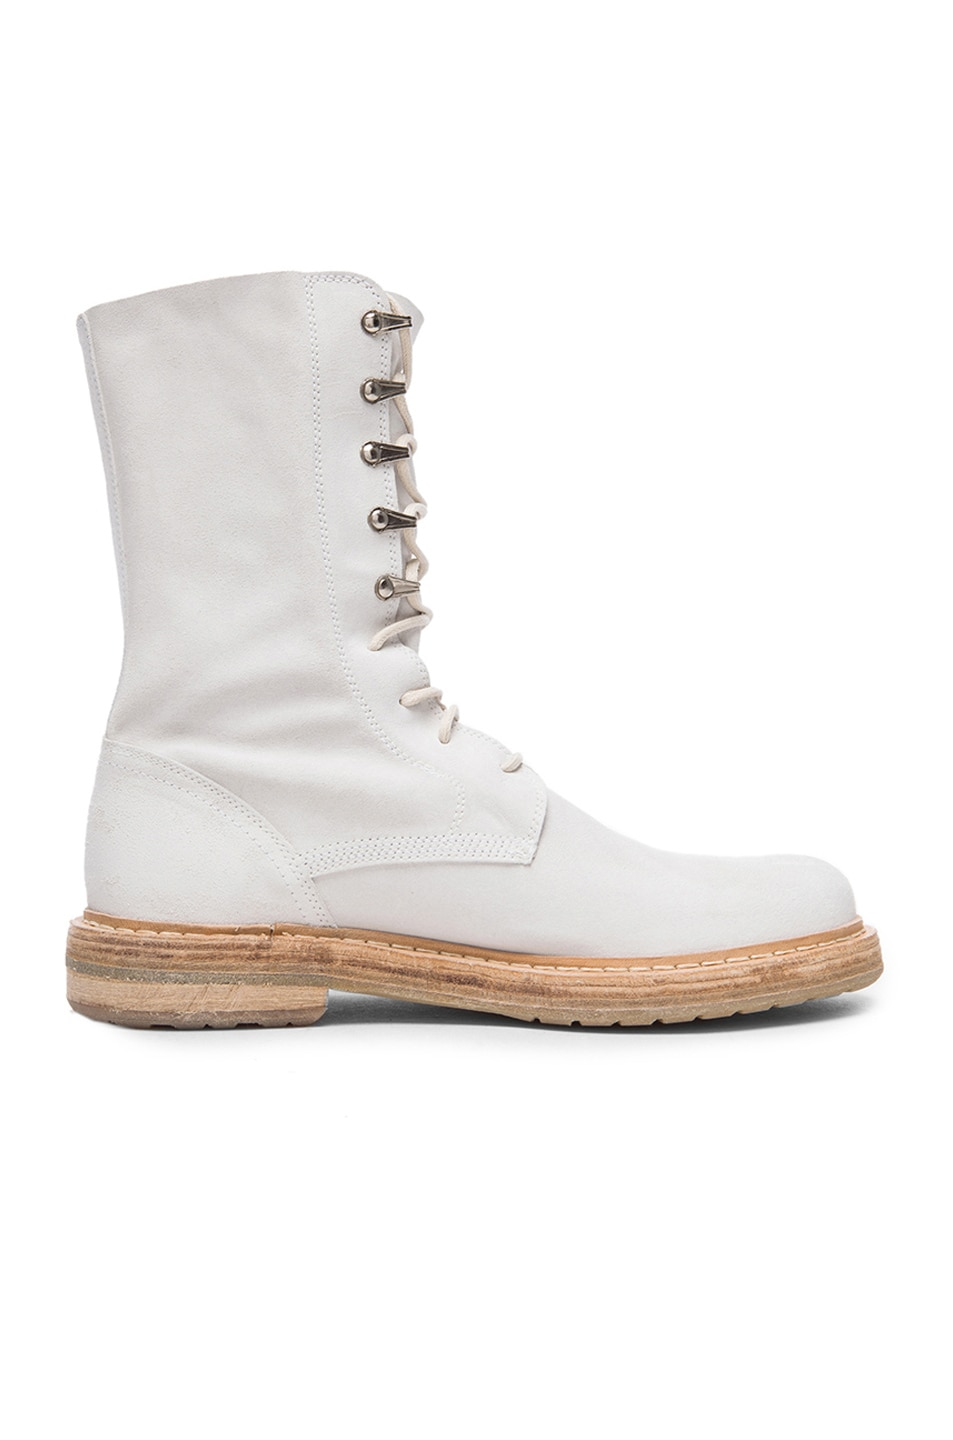 Image 2 of AD Ann Demeulemeester Suede Lace Up Combat Boots in White